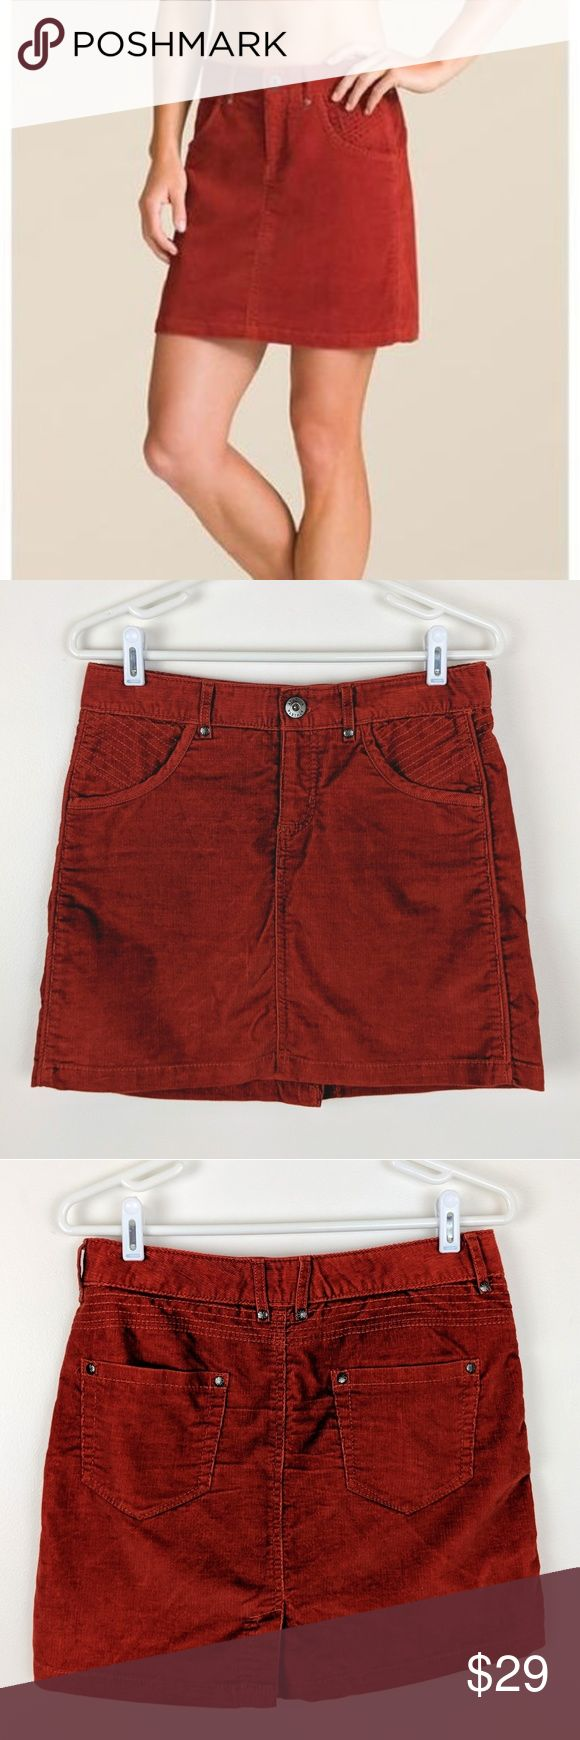 """Athleta Kaleidoscope Cord Mini Skirt in Red Spice Athleta kaleidoscope cord mini skirt in red spice. Tie on the inside waist. The color is a red orange and most like picture 7. About 15.5"""" waist to hem, 15"""" across waist; laid flat, and 18"""" across hips; laid flat. No trades! EUC A26 Athleta Skirts Mini"""